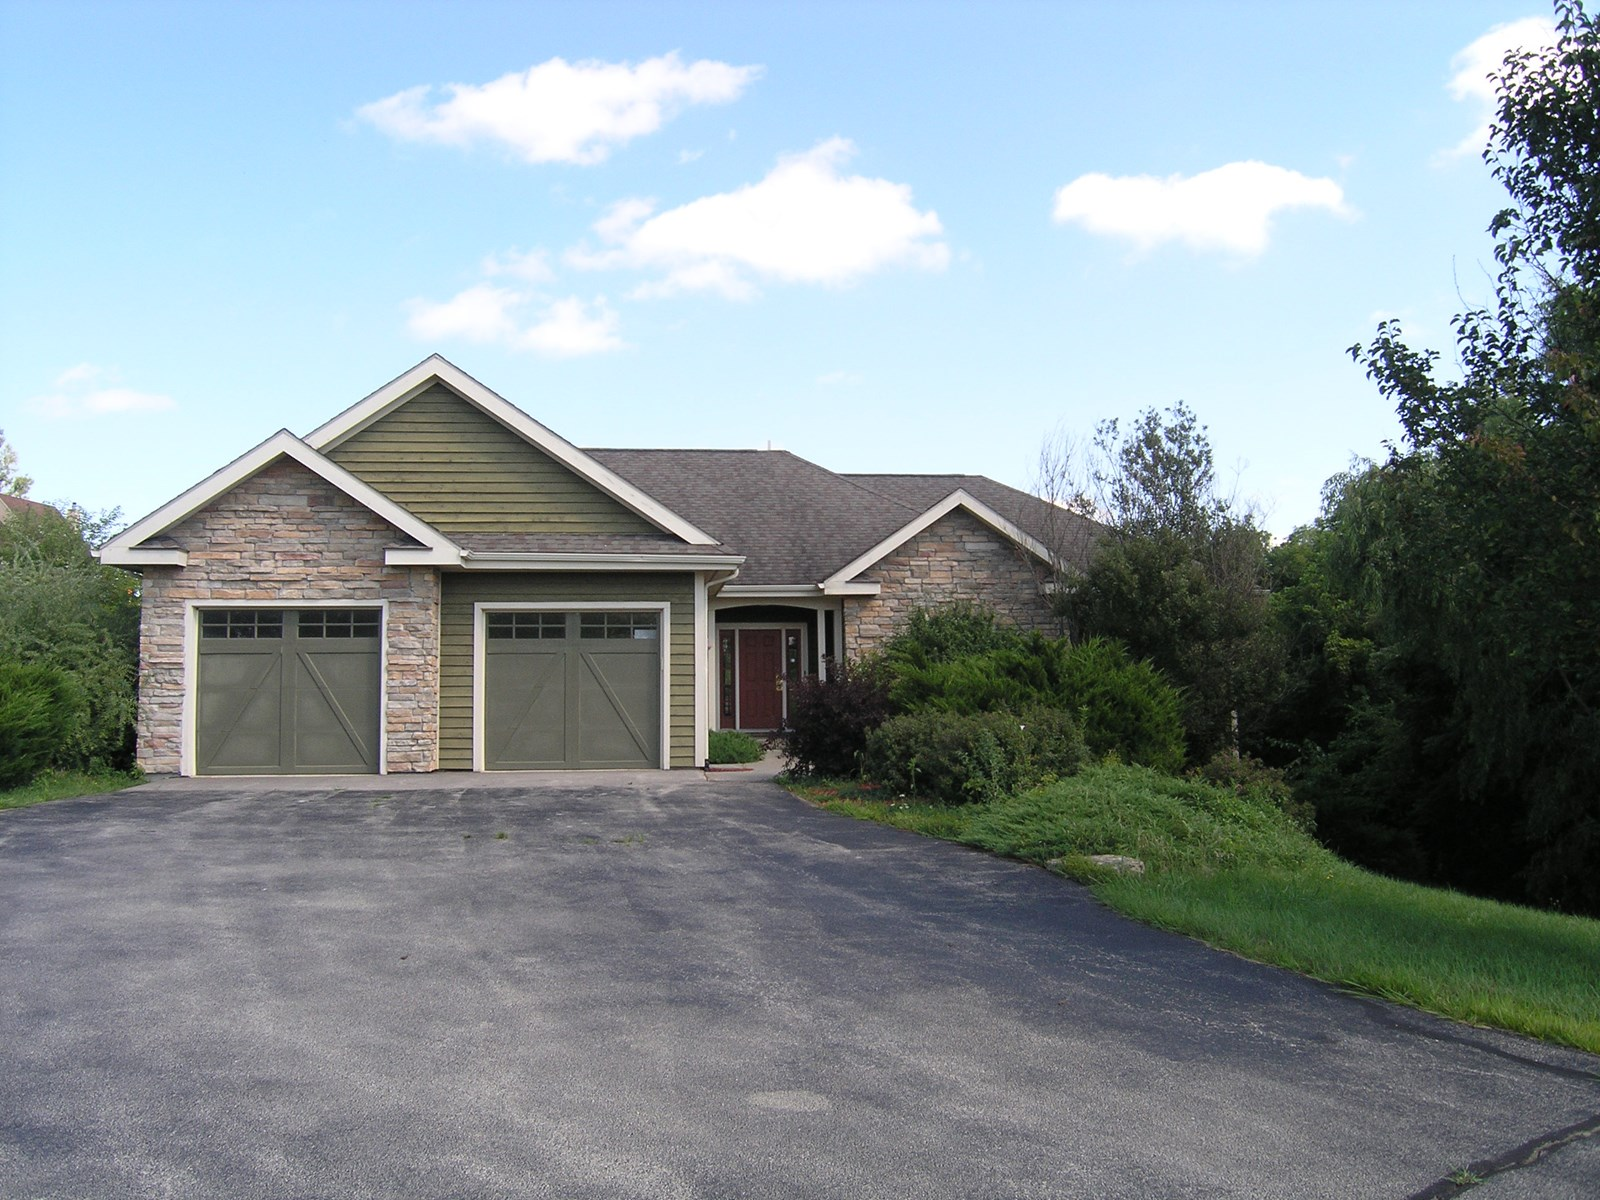 6 Bedroom Ranch for sale in Galena, il